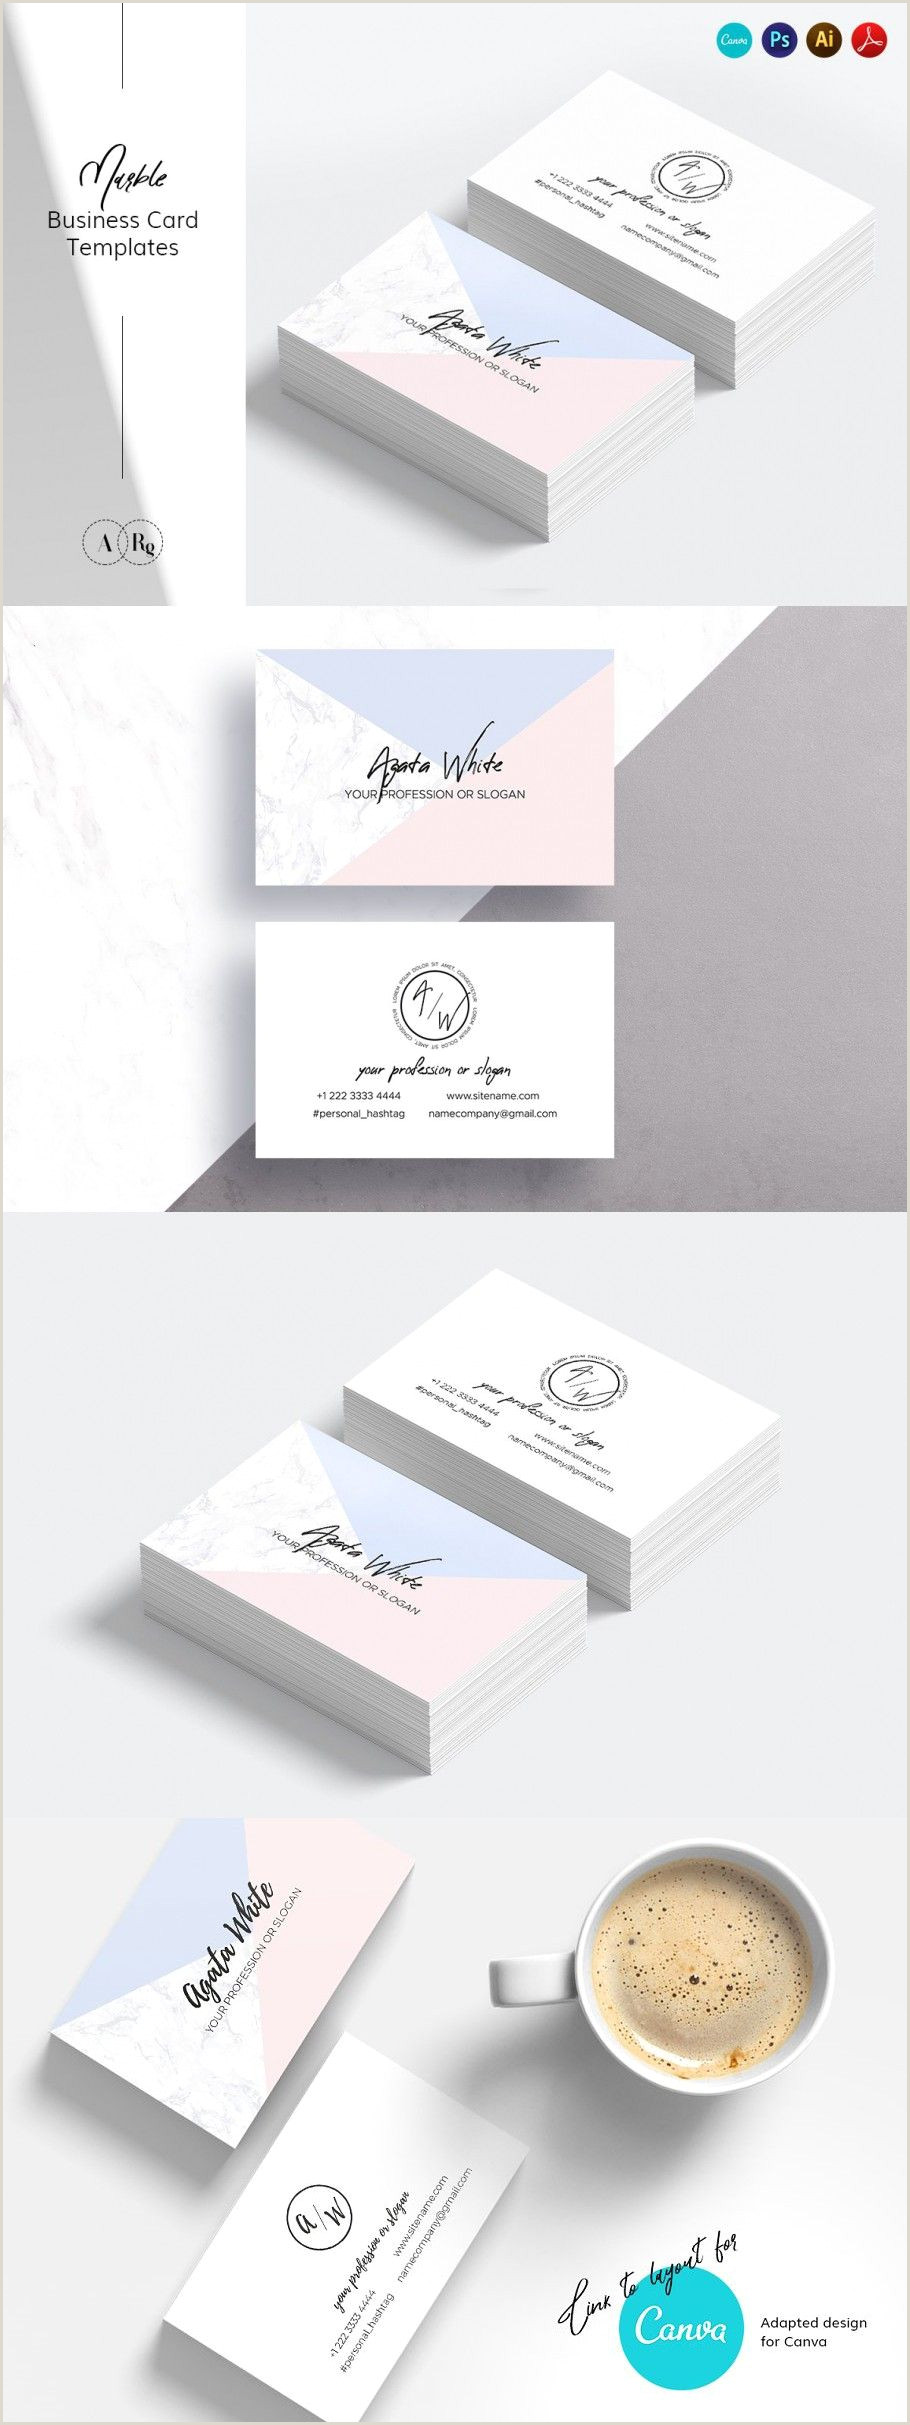 What To Put On Business Card Simple & Clean Business Card In 2020